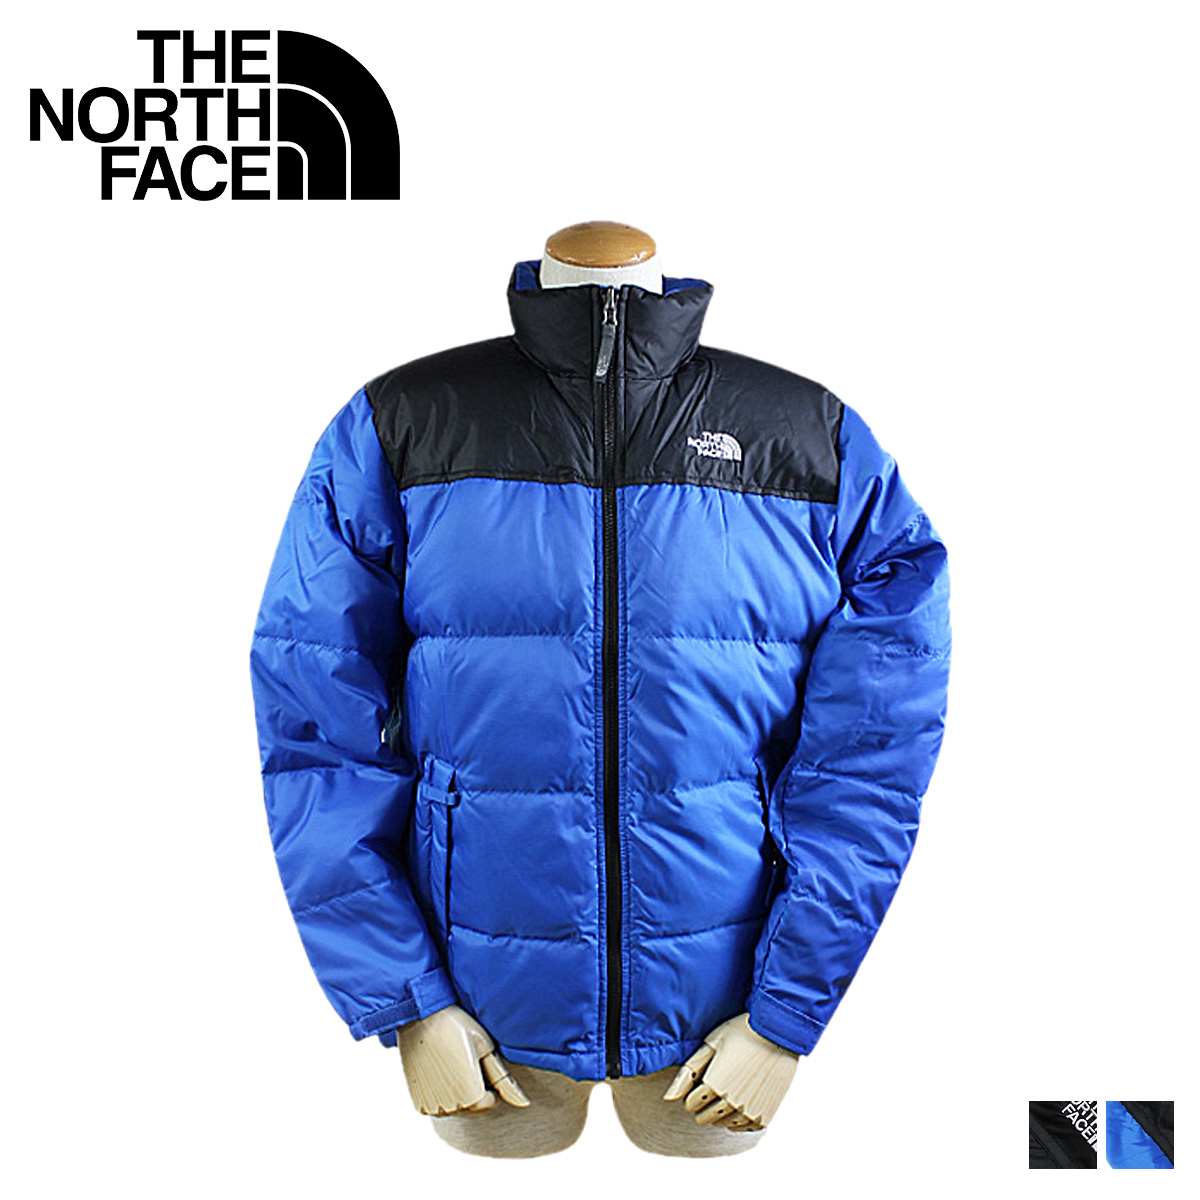 [SOLD OUT] the north face THE NORTH FACE kids down jacket 2 colors A3NW BOYS ' NUPTSE JACKET mens Womens